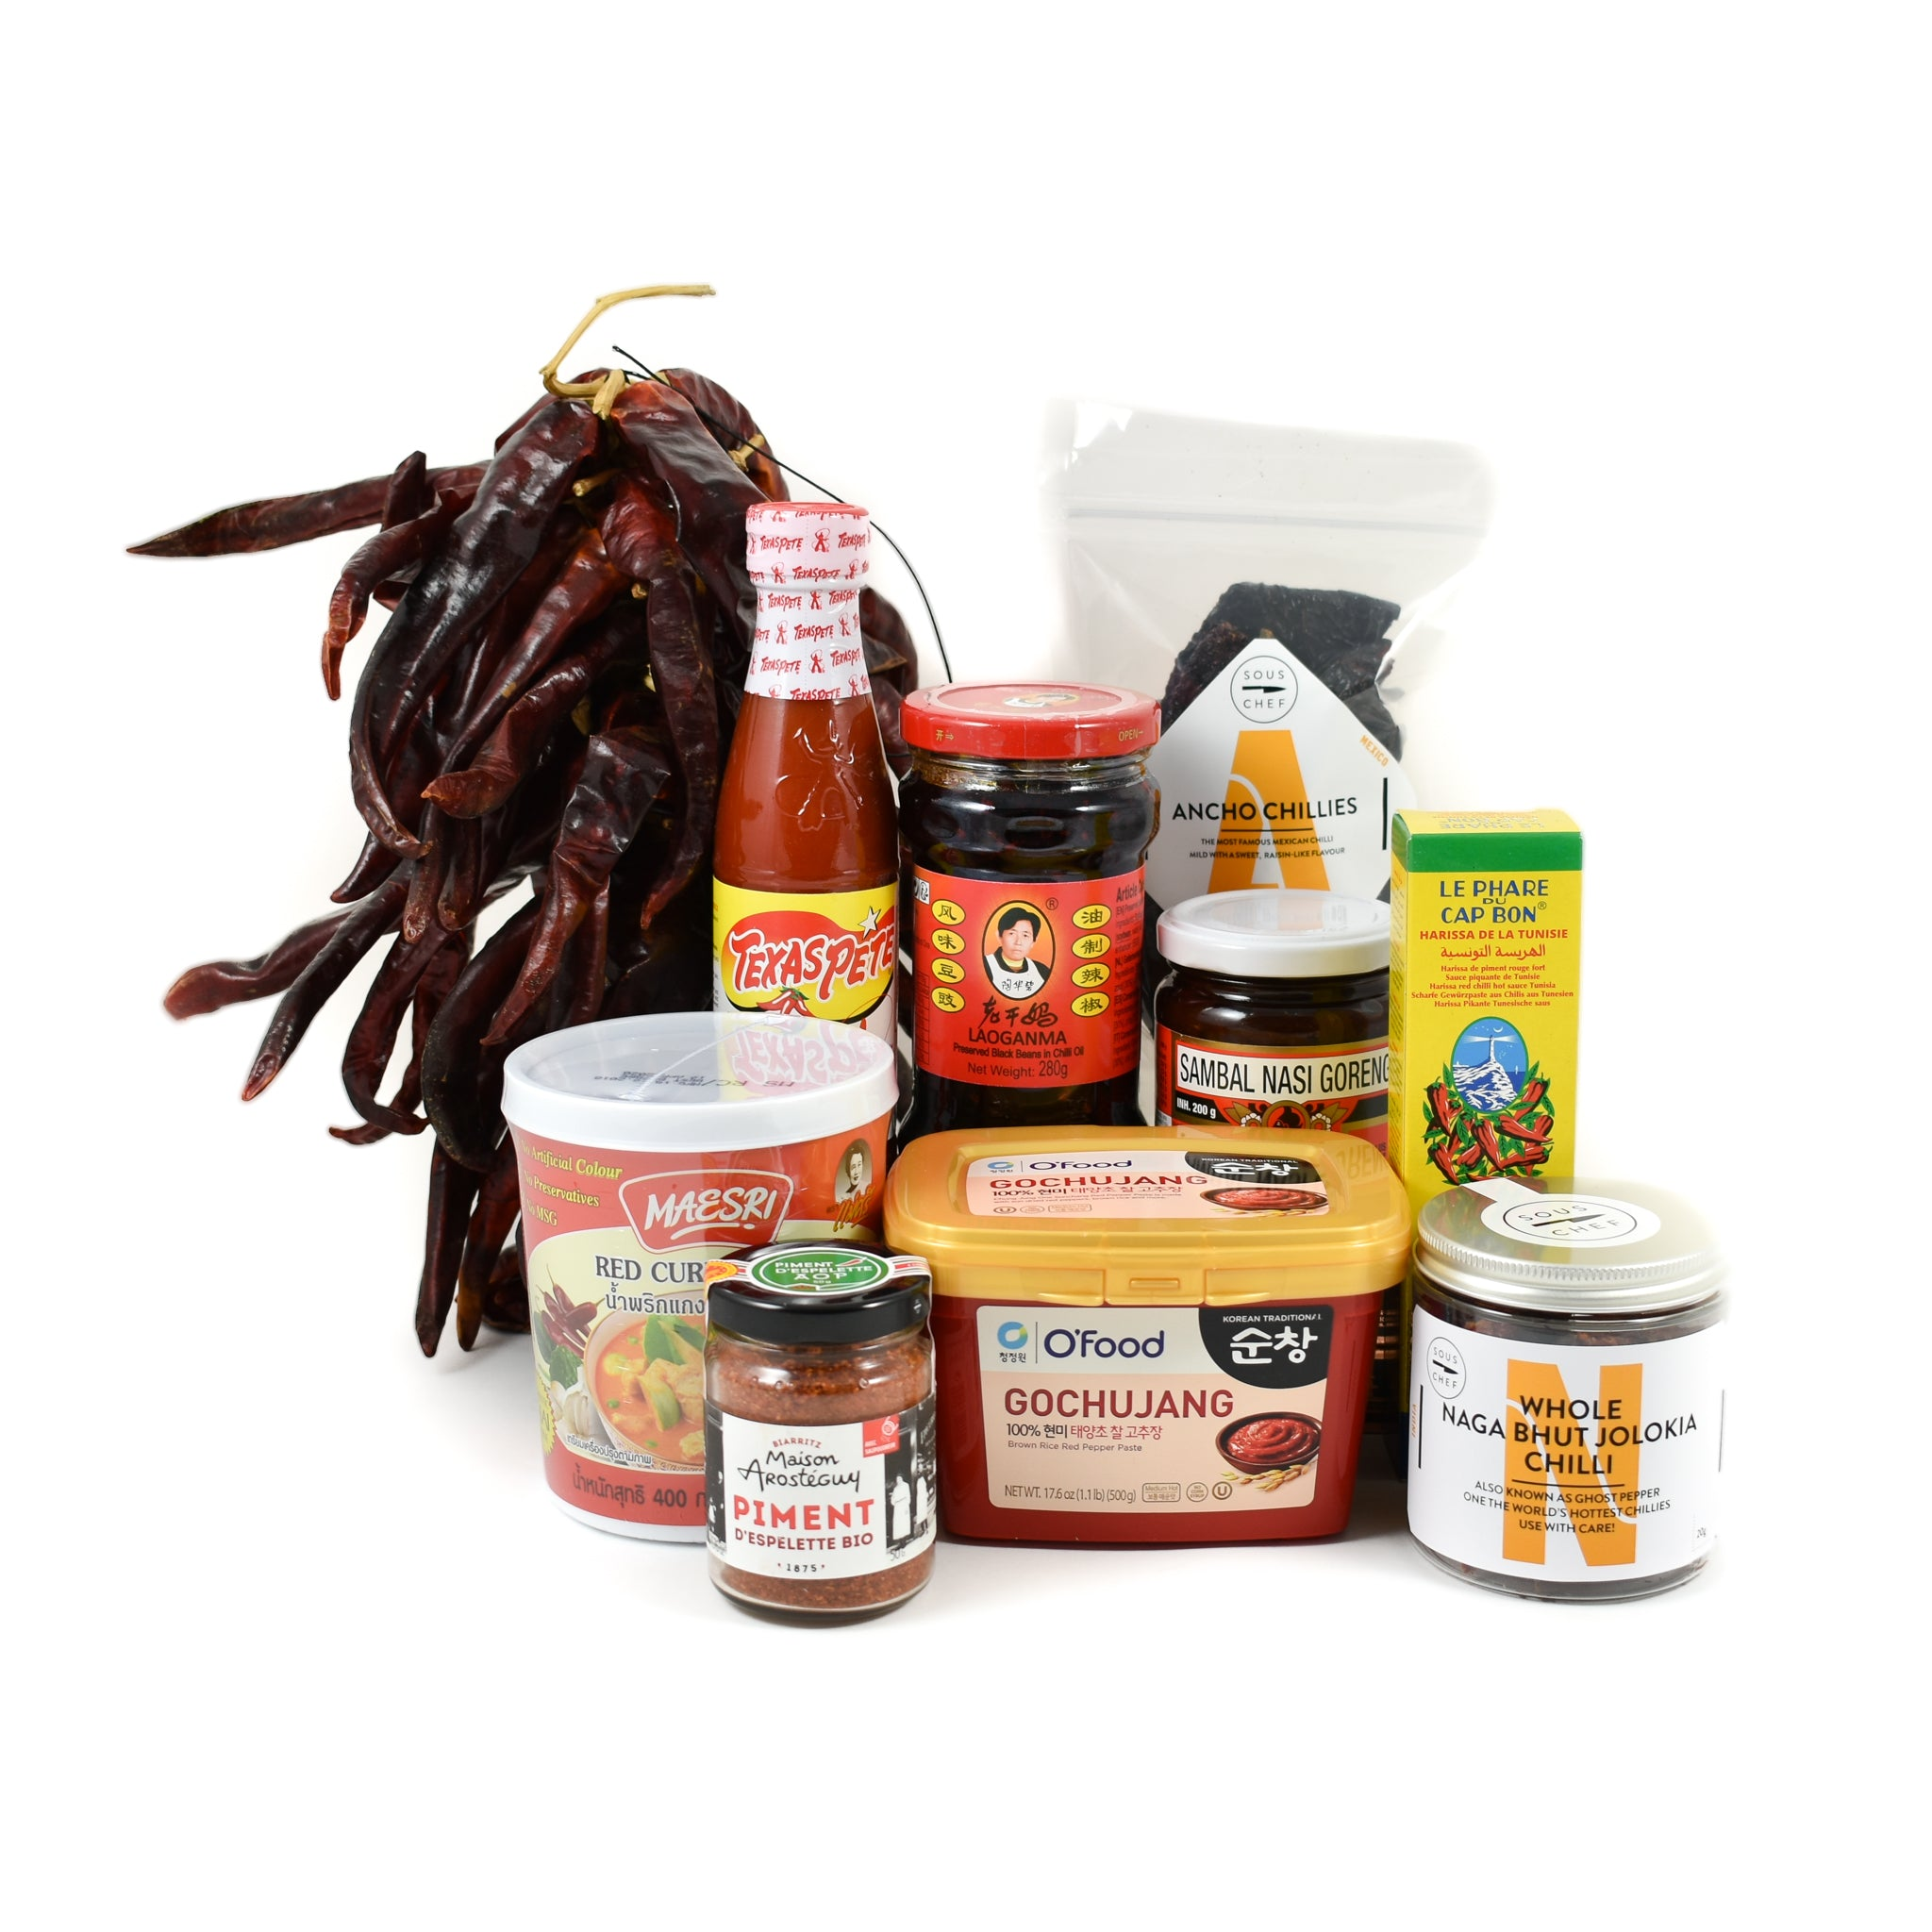 Sous Chef Kit Round The World Chilli Tour Gifts Hampers & Gift Sets